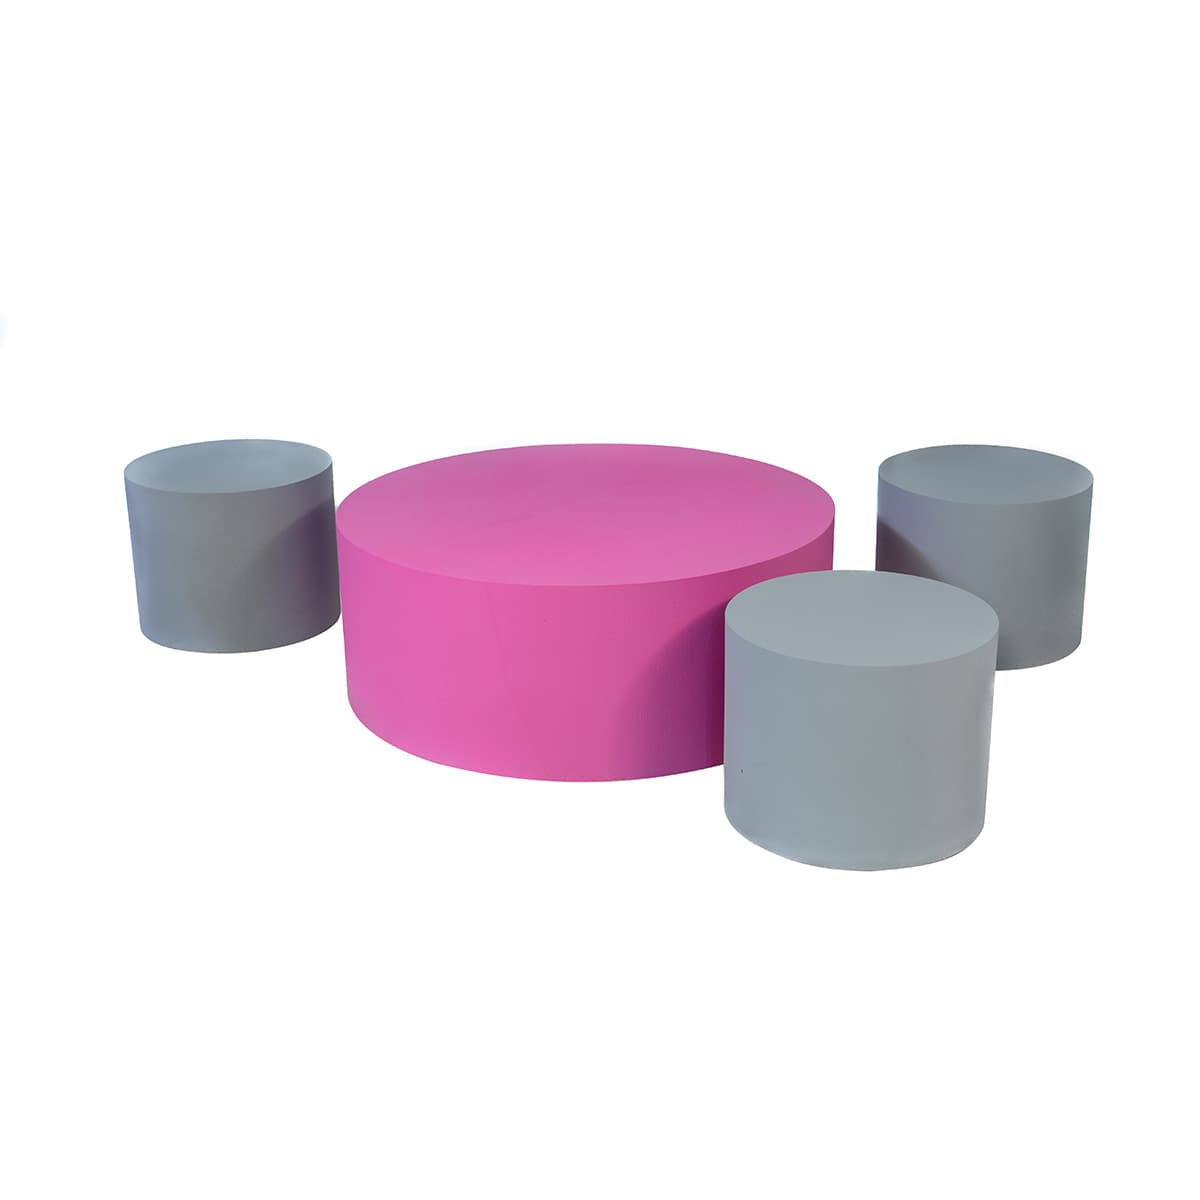 _0009_Block_Cylinders_grey-pink_isolated